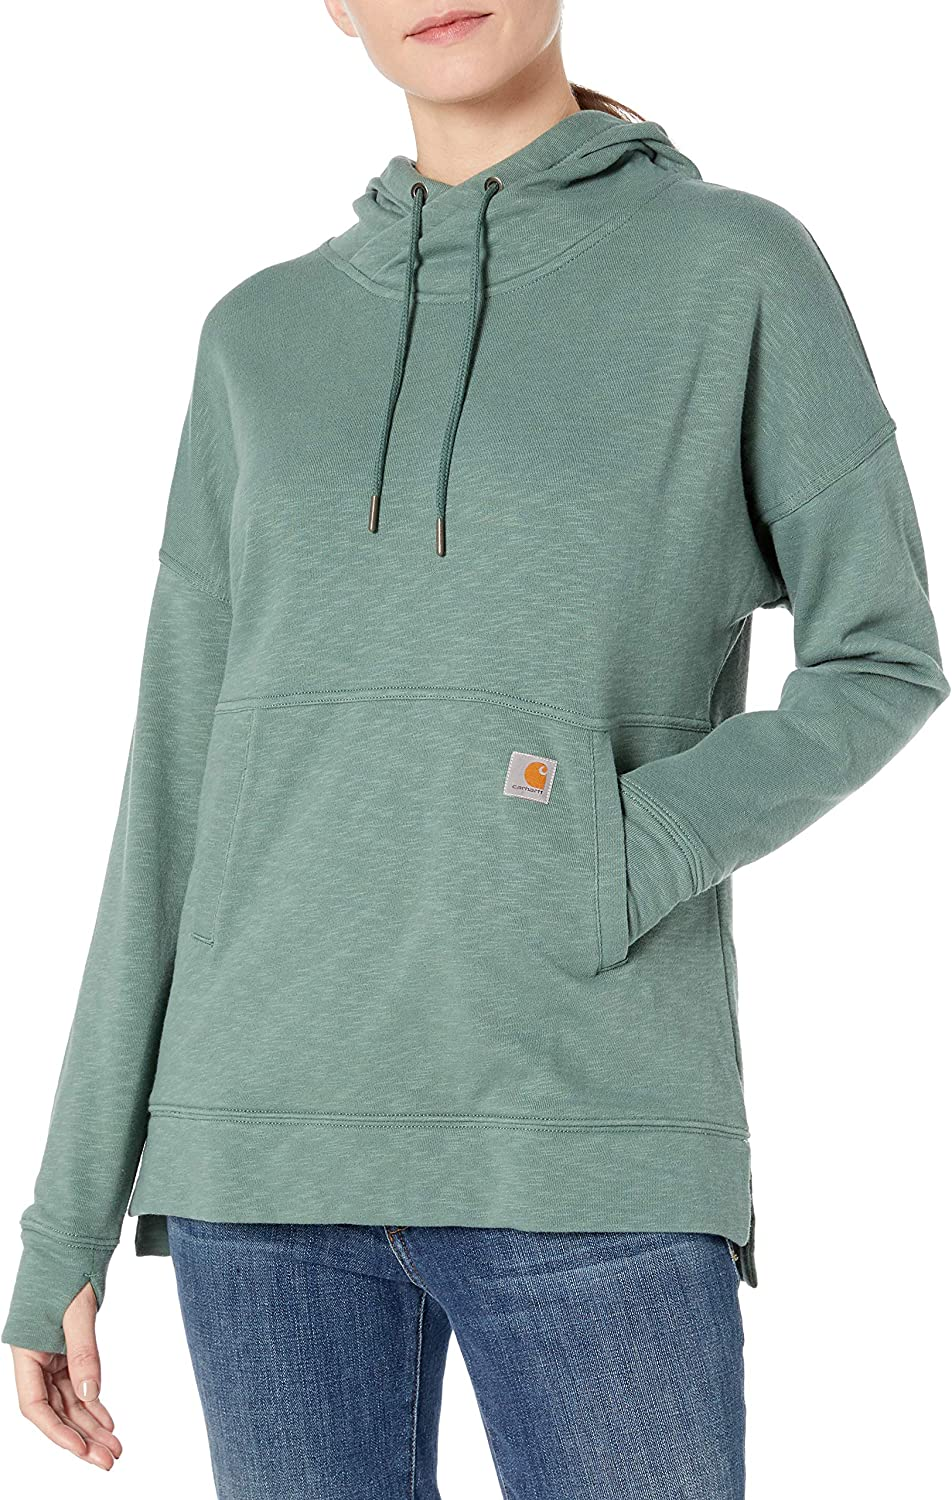 Carhartt Womens Newberry Hoodie Work Utility T-Shirt